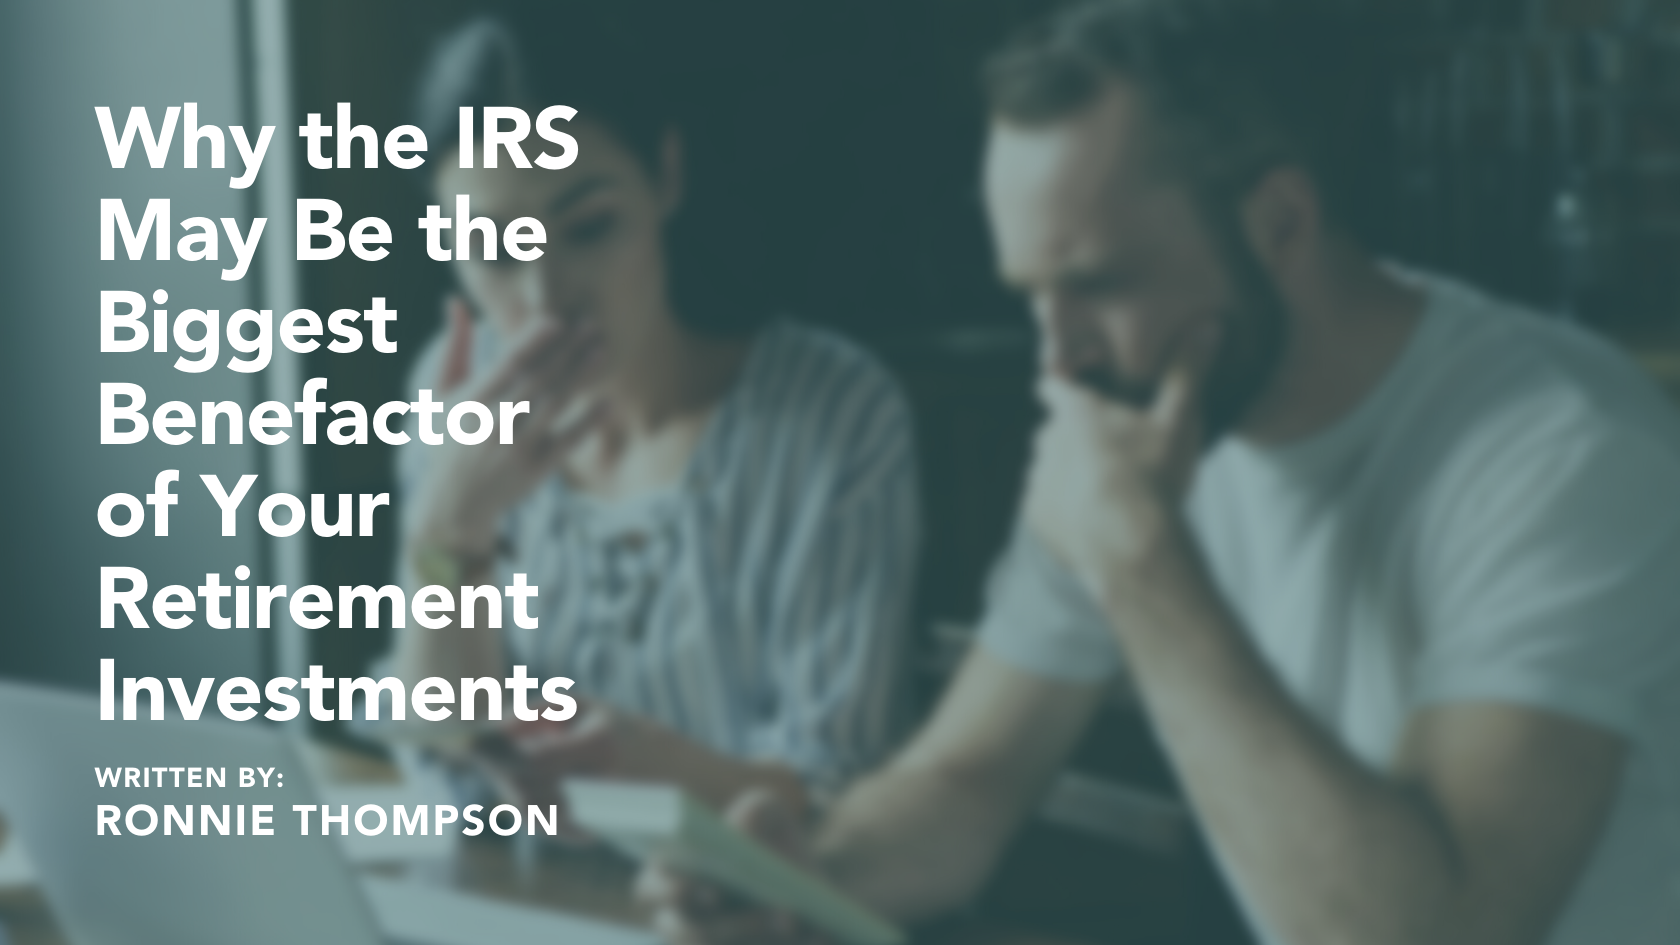 Why the IRS May Be the Biggest Benefactor of Your Retirement Investments Thumbnail